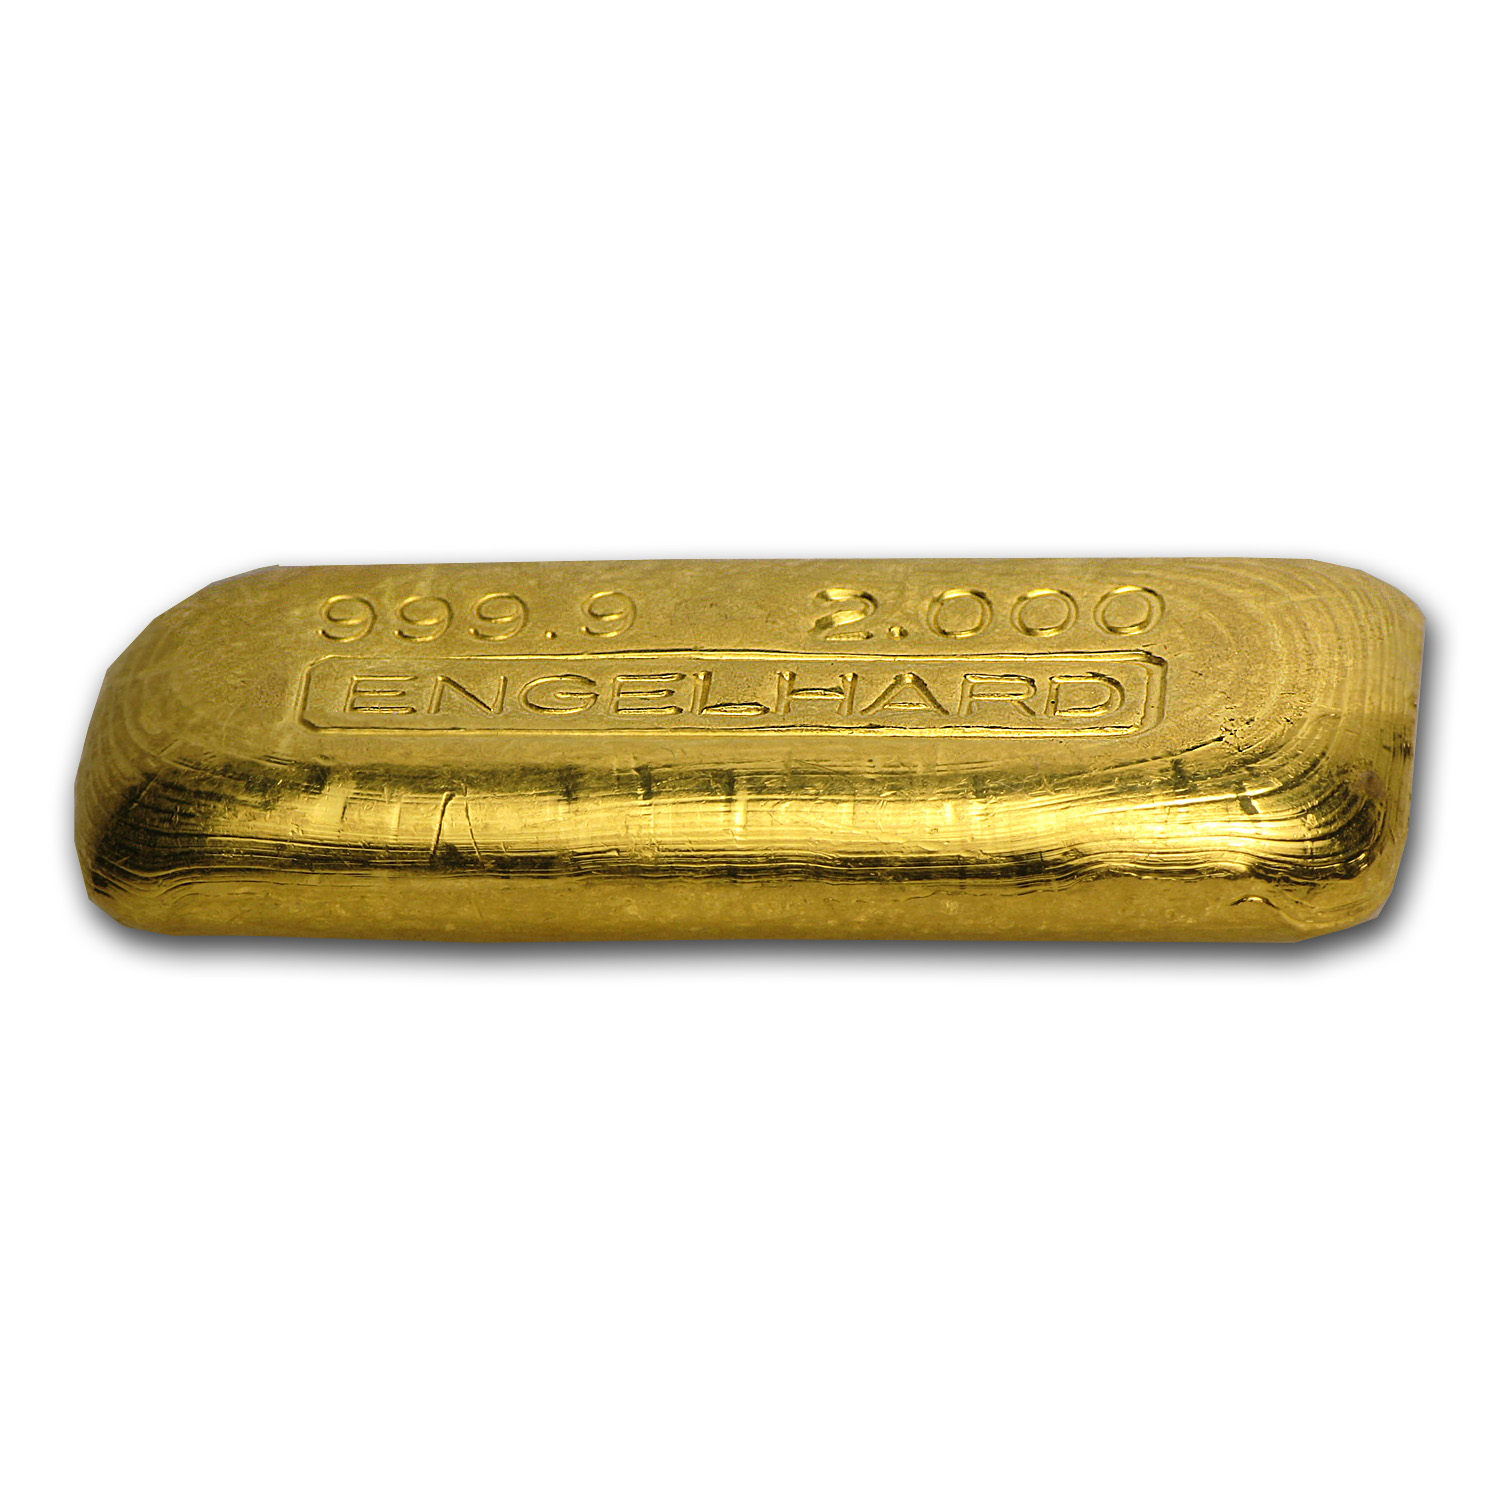 2 oz Gold Bars - Engelhard (Poured, .9990 Fine)